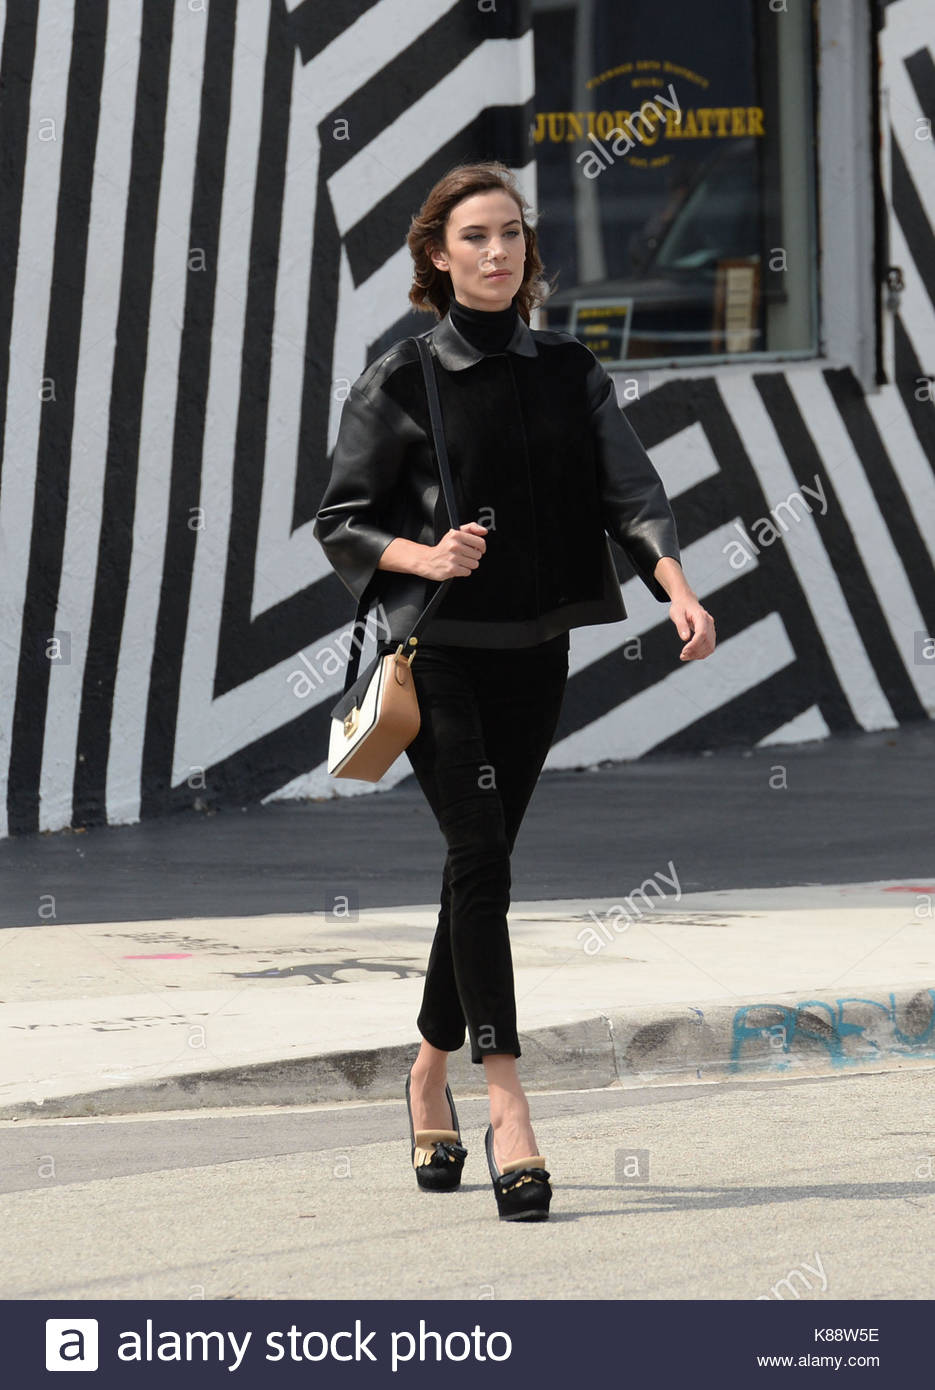 Alexa Chung Is the Star of Longchamp's Spring 2019 Campaign